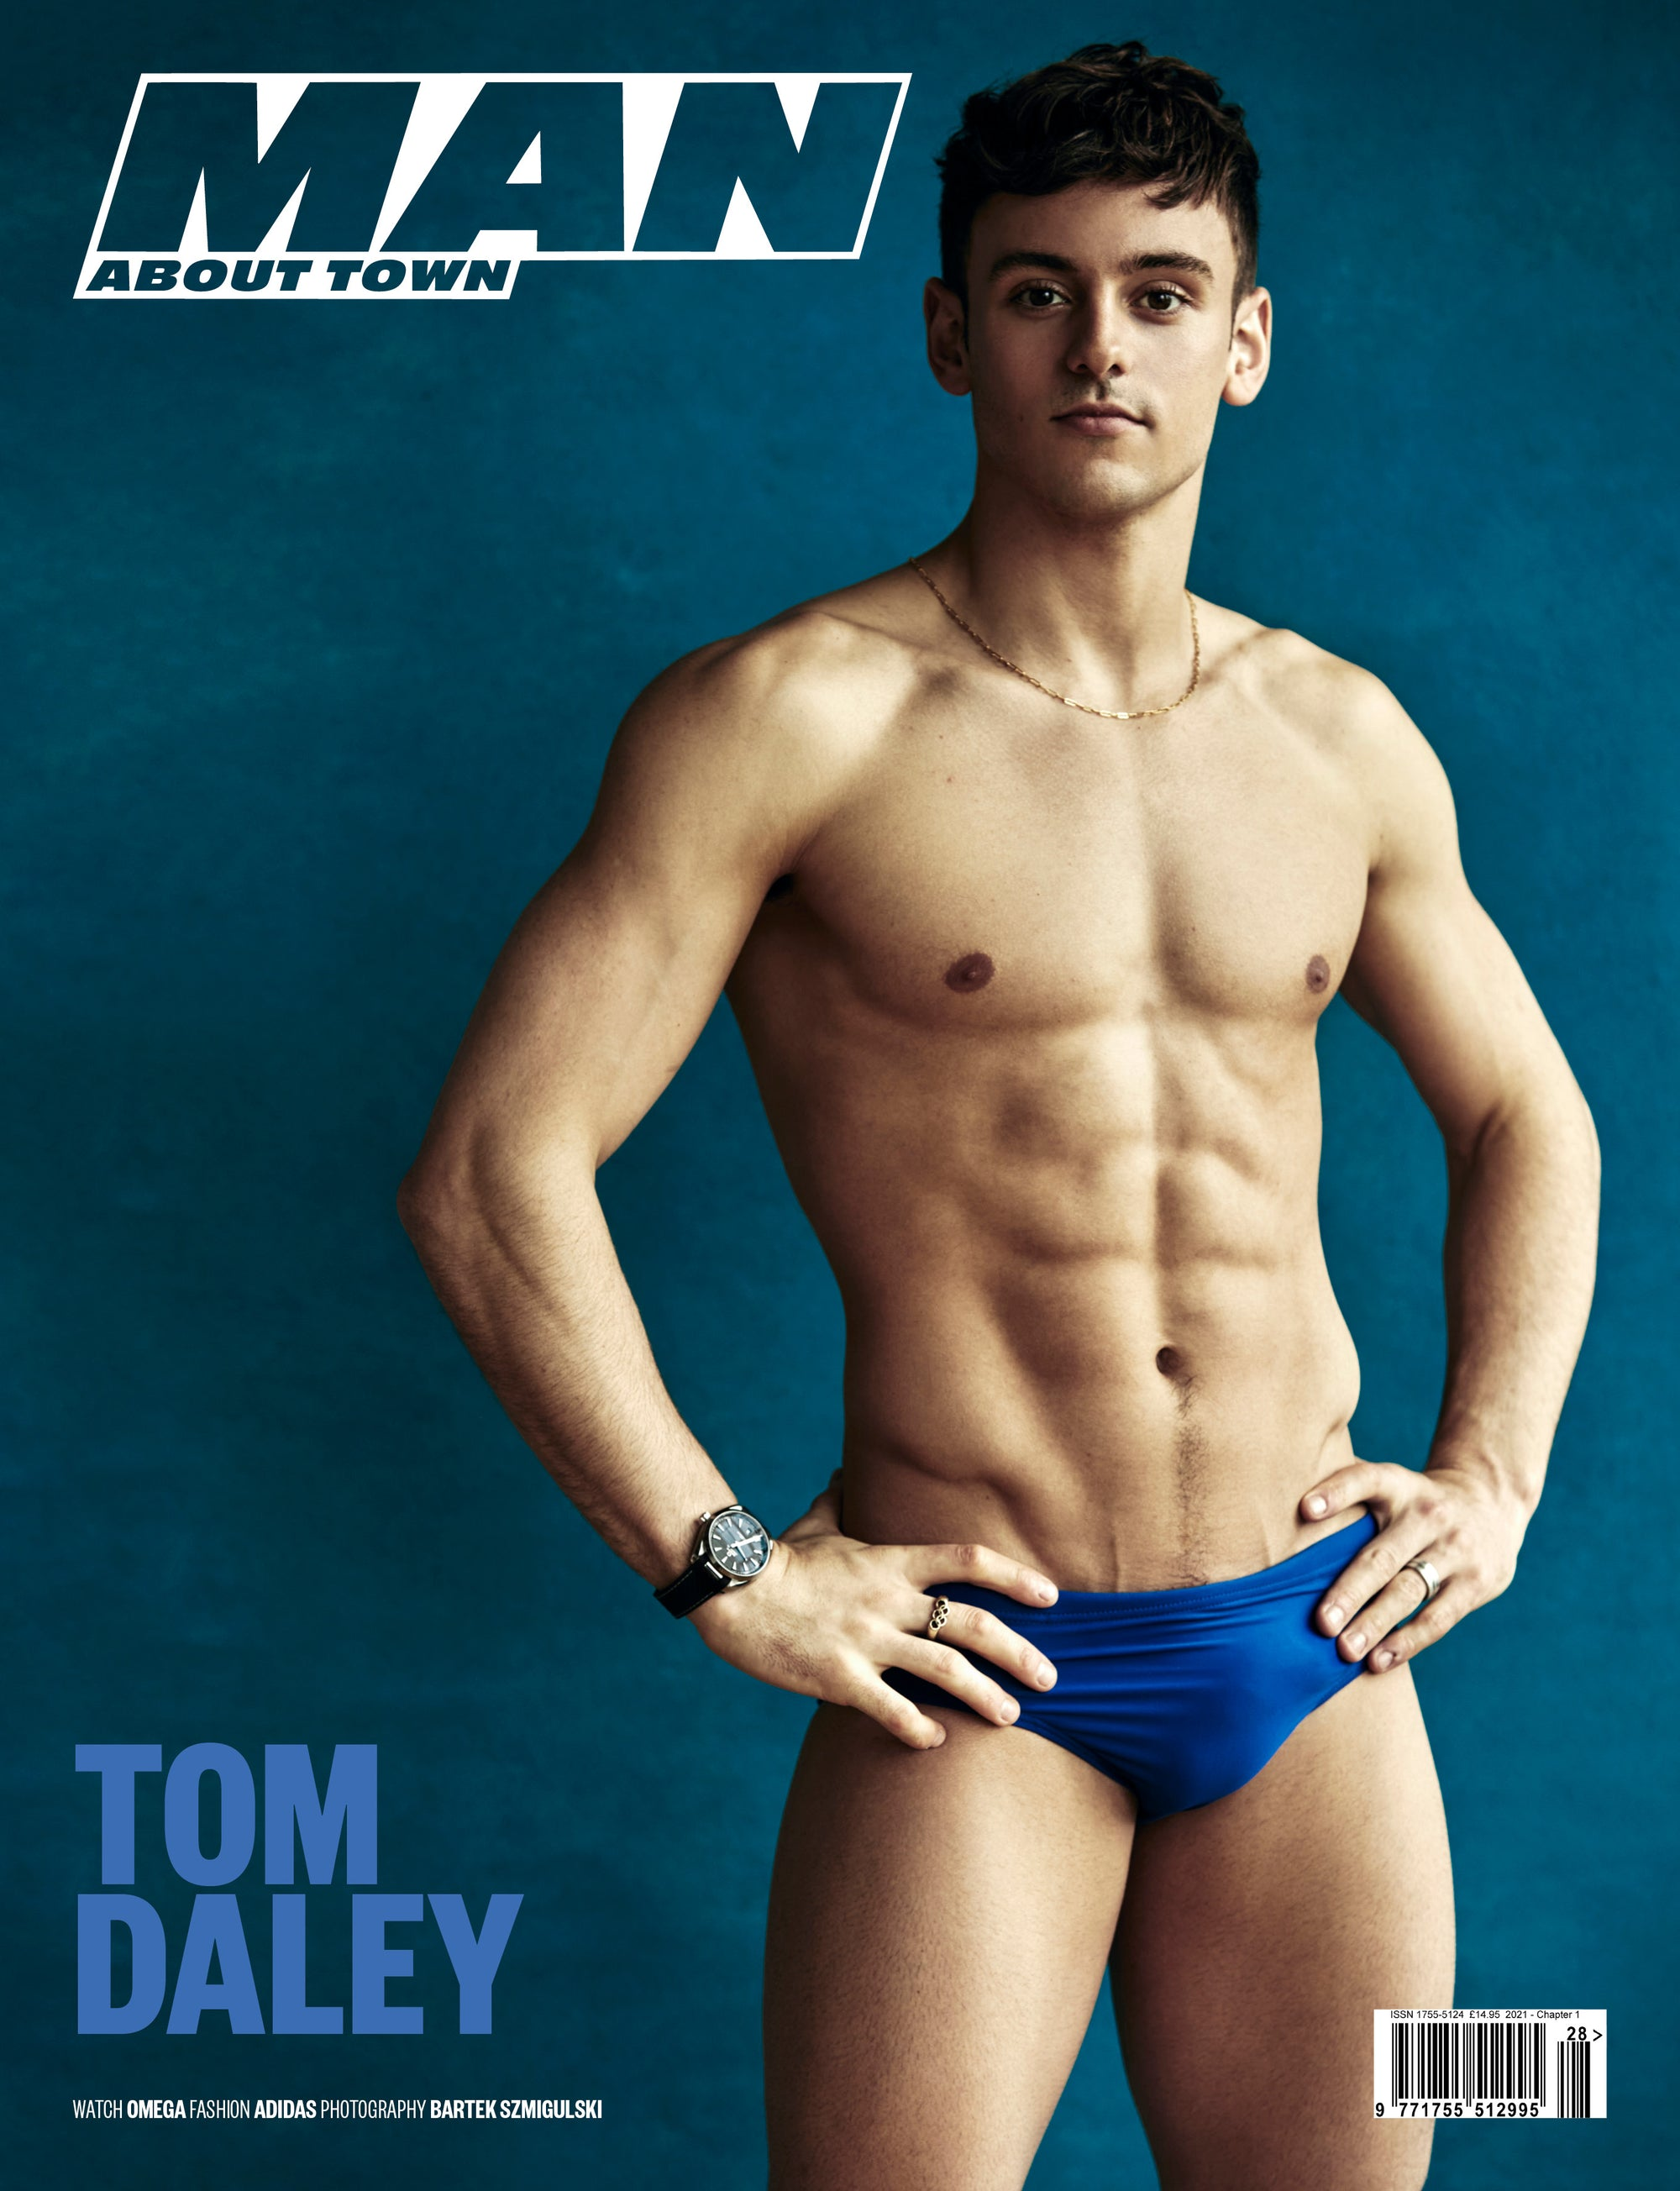 TOM DALEY covers Man About Town 2021, Chapter 1